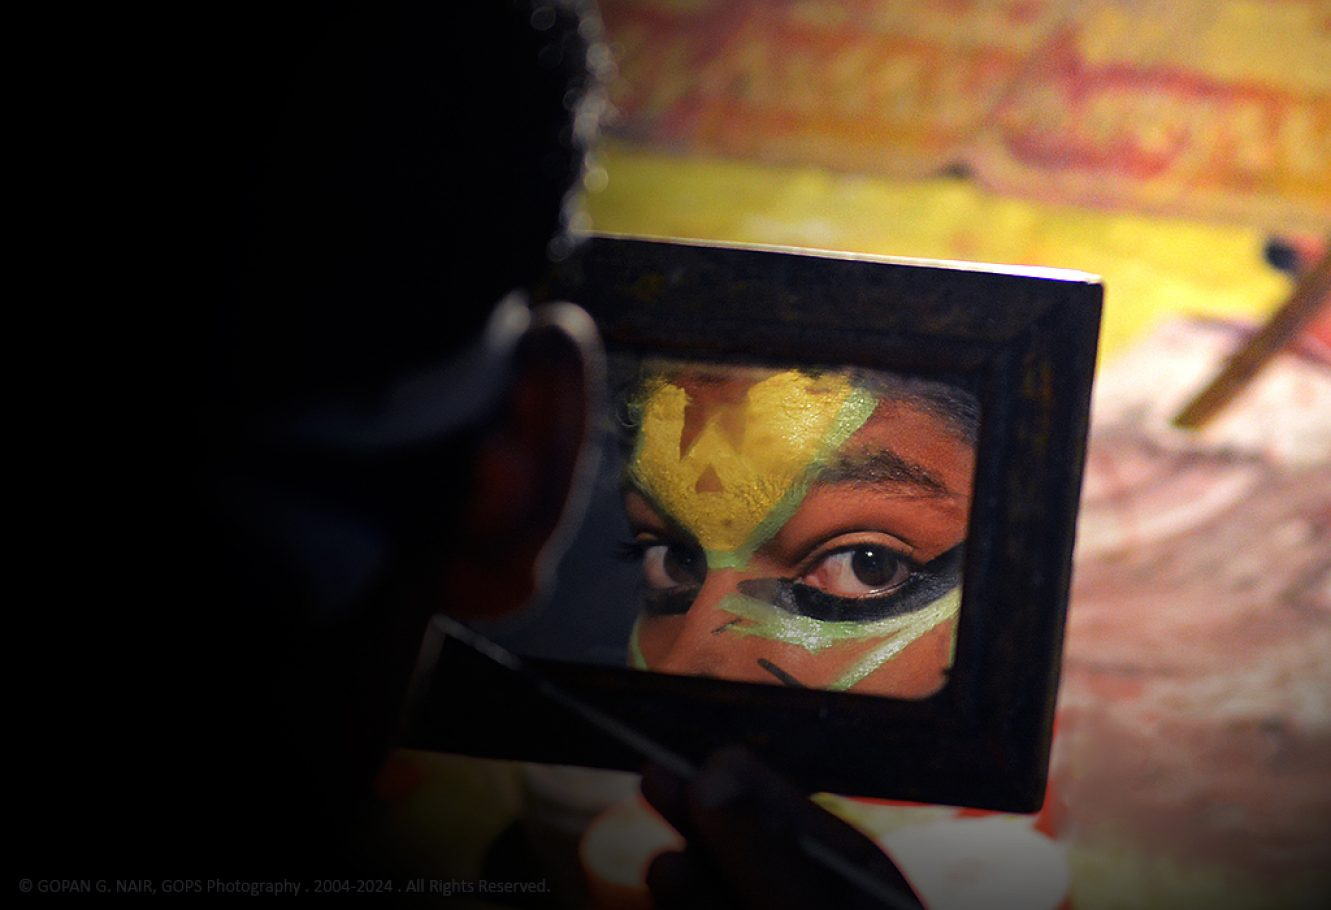 A KATHAKALI PERFORMER APPLYING MAKEUP